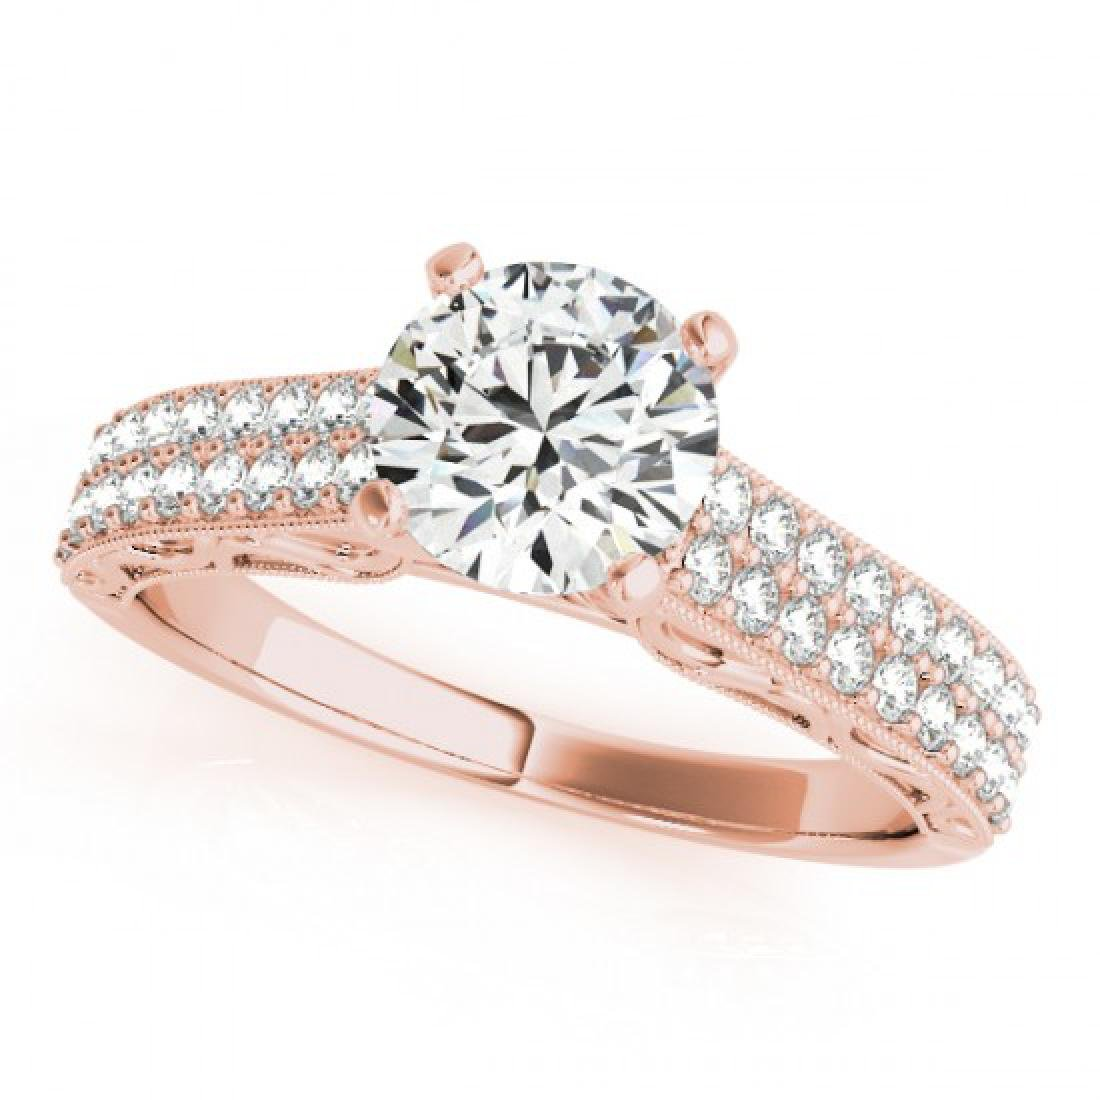 1.41 CTW Certified VS/SI Diamond Solitaire Antique Ring